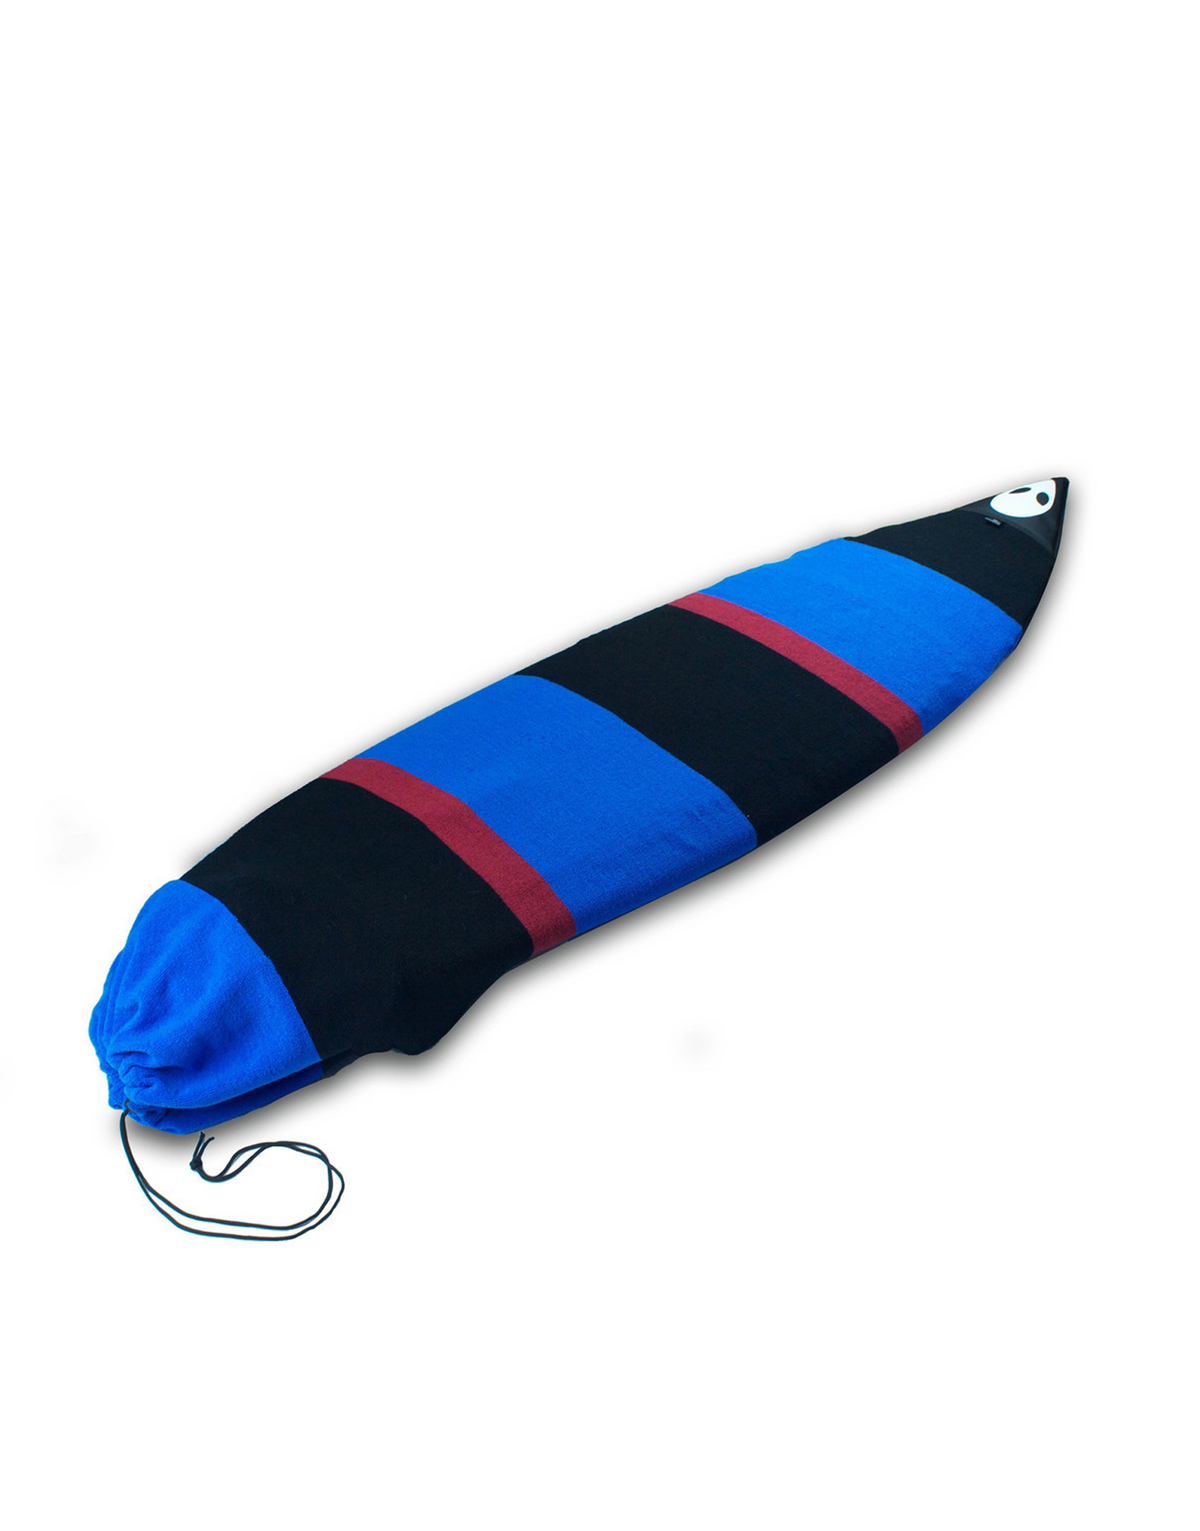 Lunasurf 6ft Surfboard Sock Black Red Blue